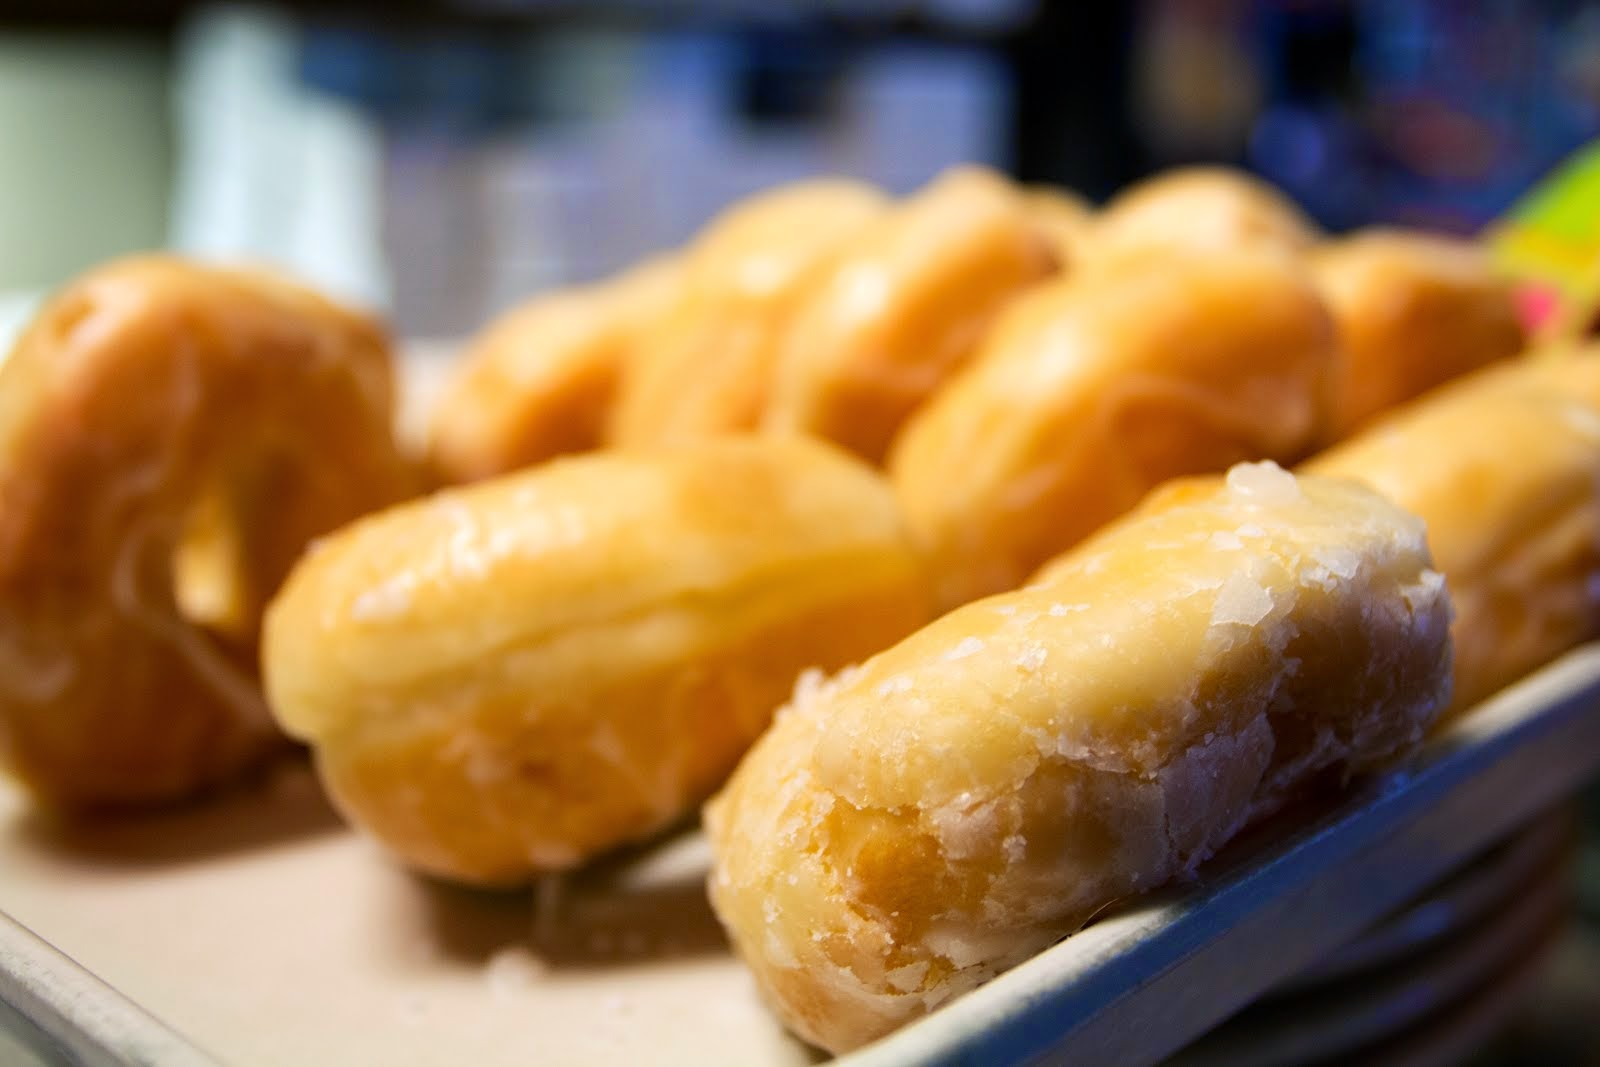 21 Doughnuts to try in Arkansas before you die